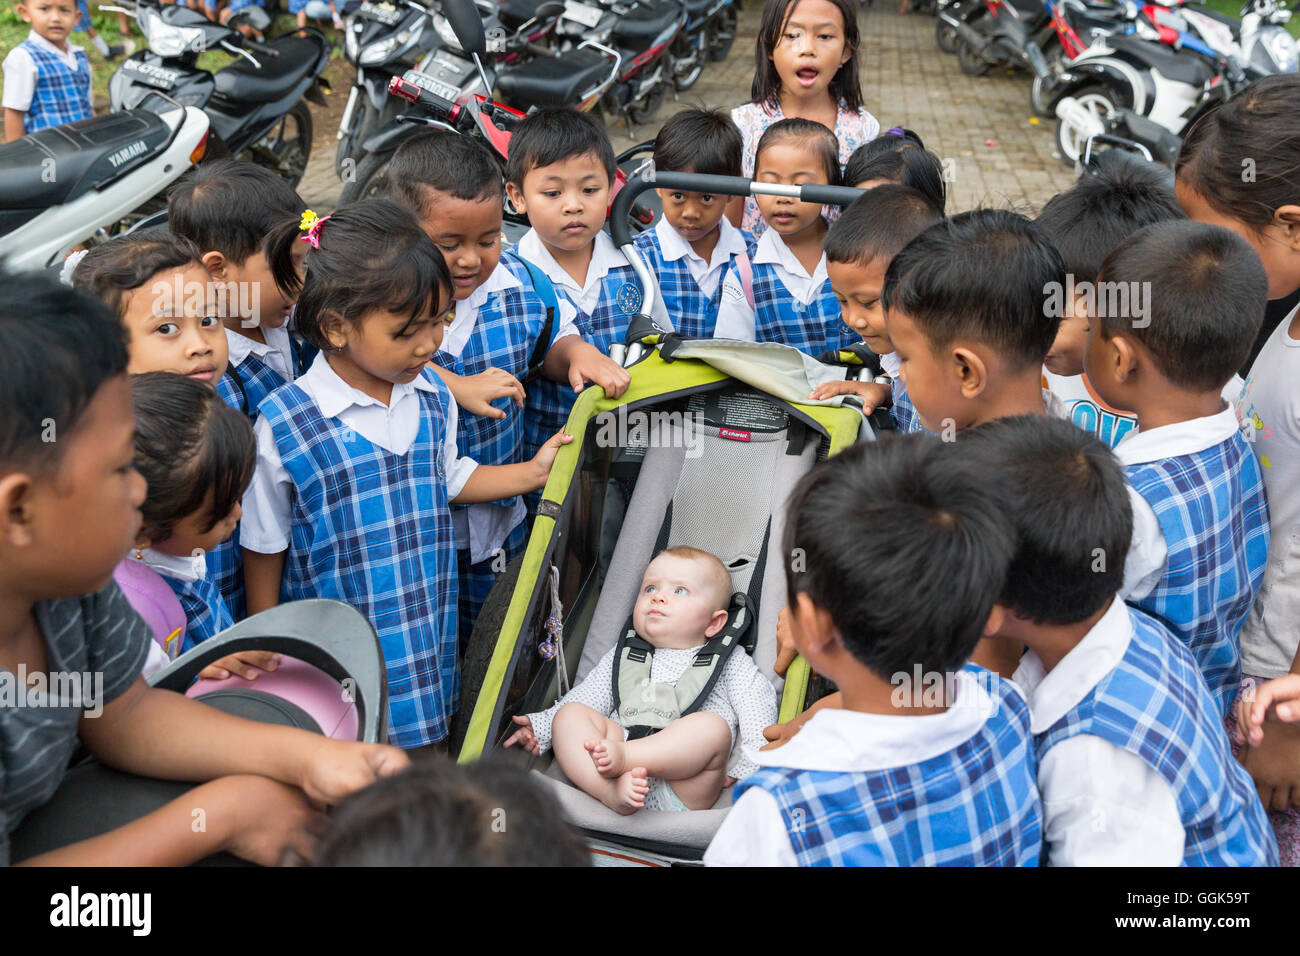 Many Balinese schoolchildren being curious about western baby, girl 5 months old, sitting in a stroller, kids gathering - Stock Image